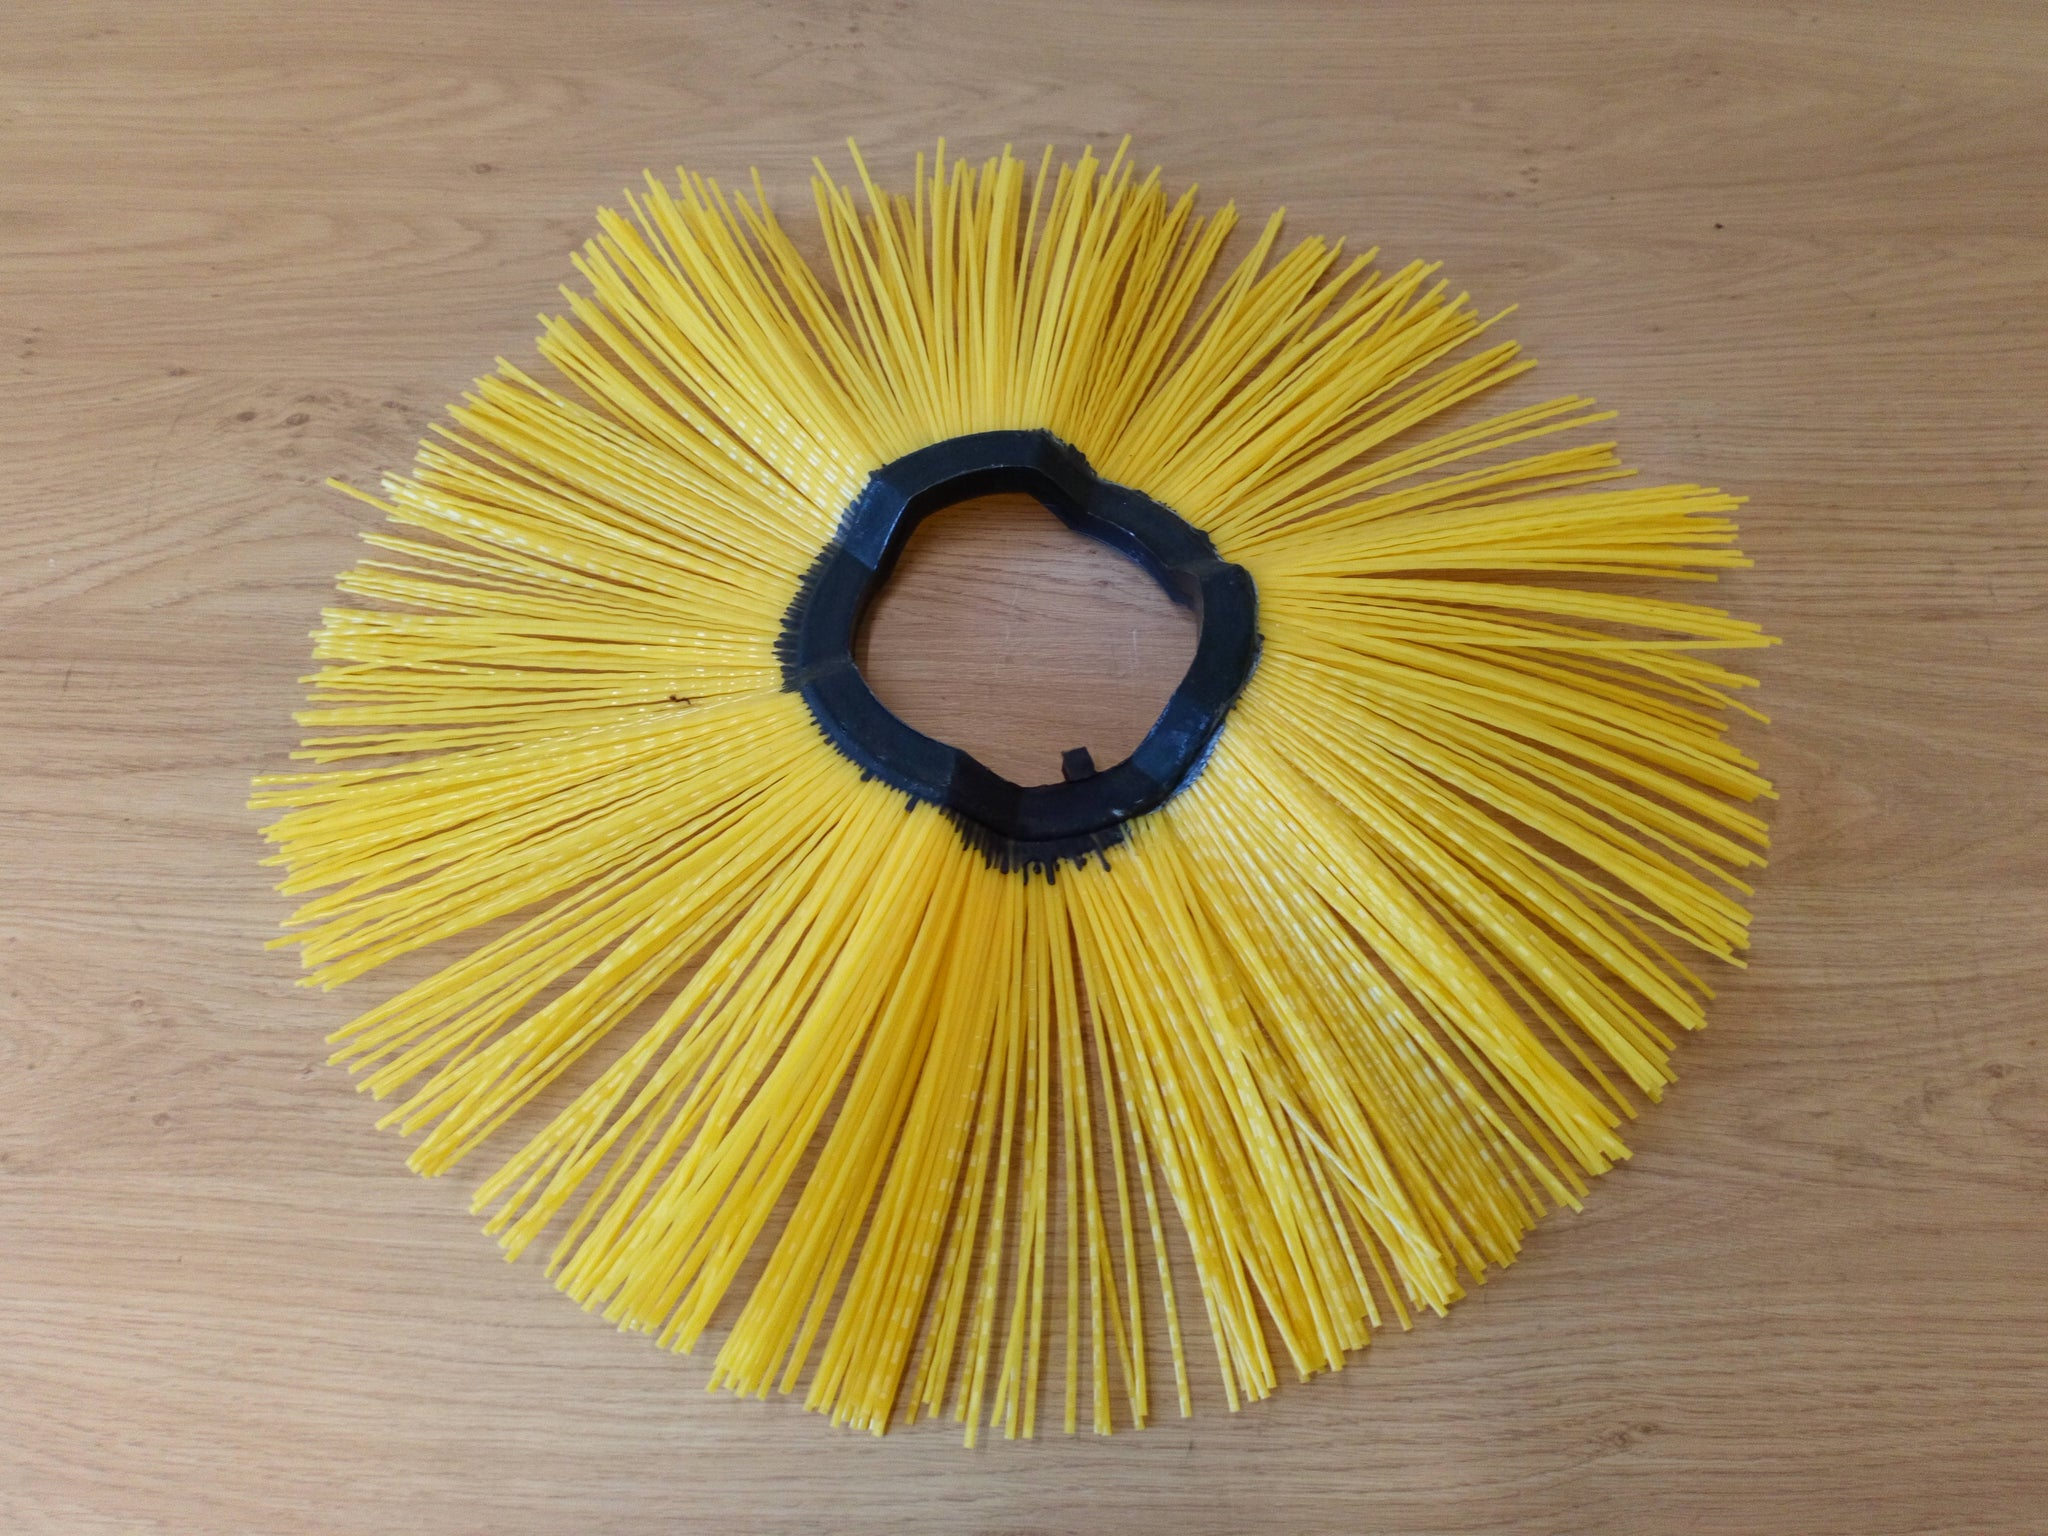 NC New Type Polypropylene Brush